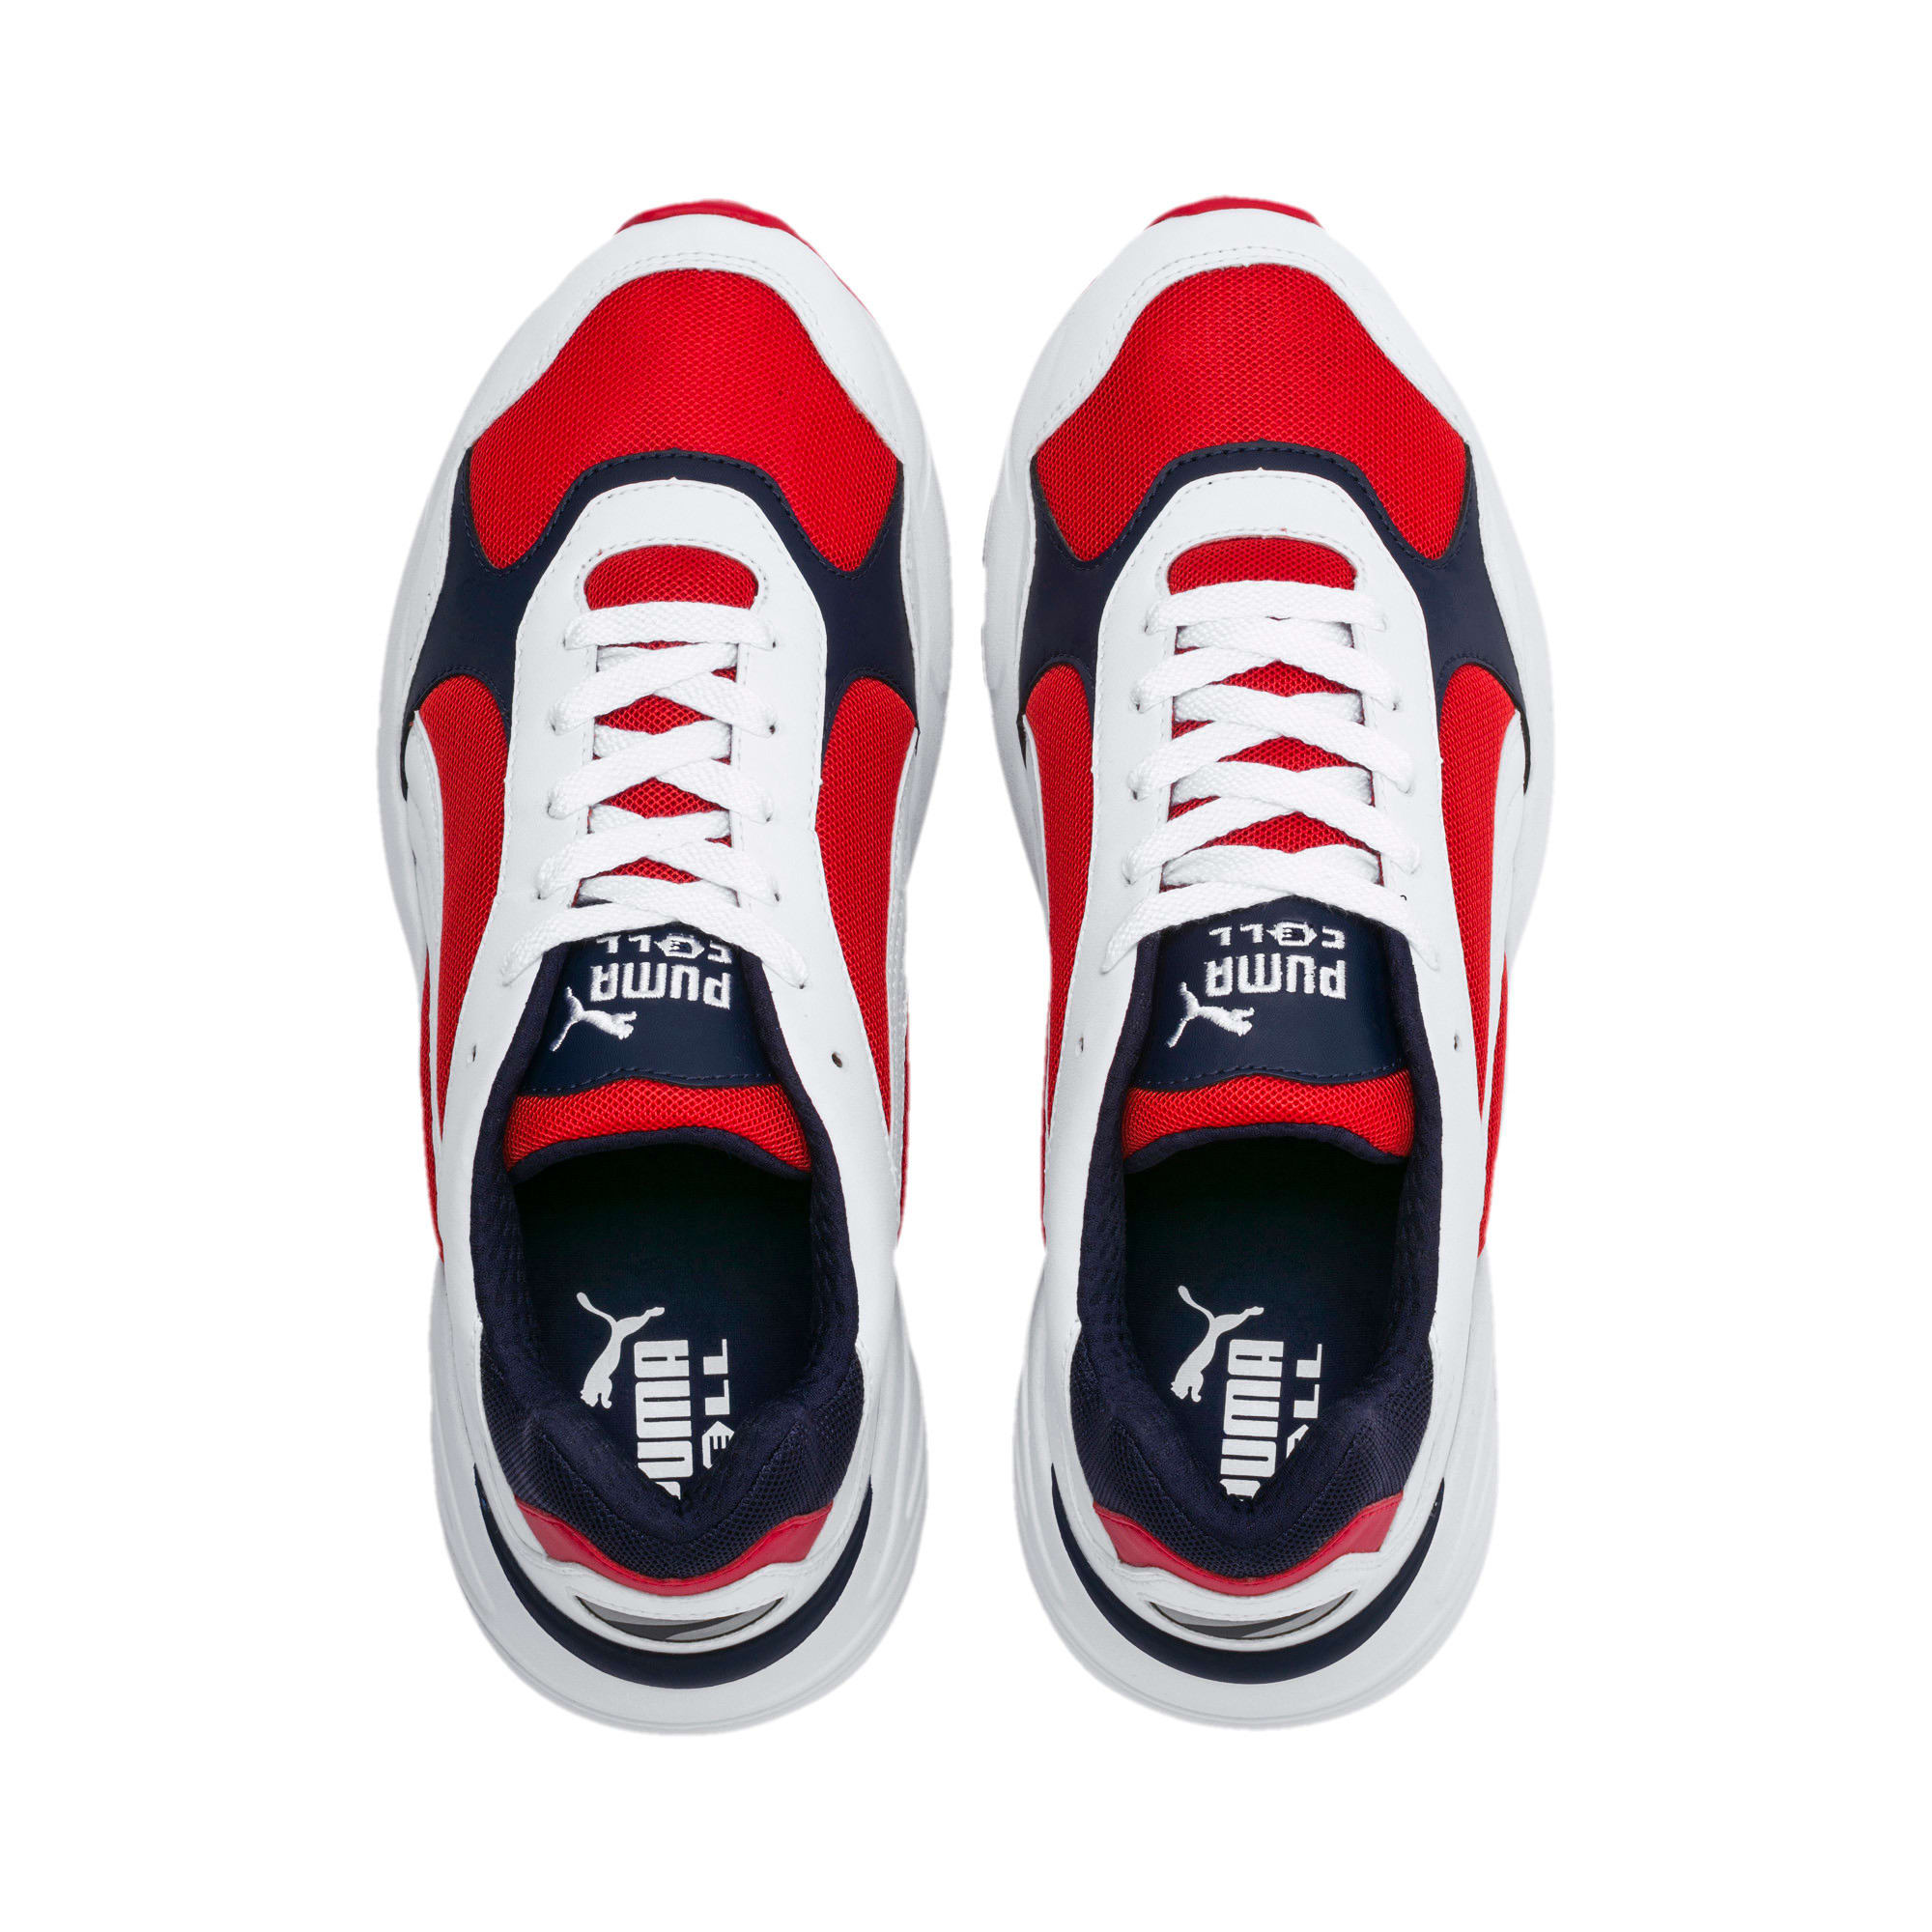 Thumbnail 6 of CELL Viper Sneakers, Puma White-High Risk Red, medium